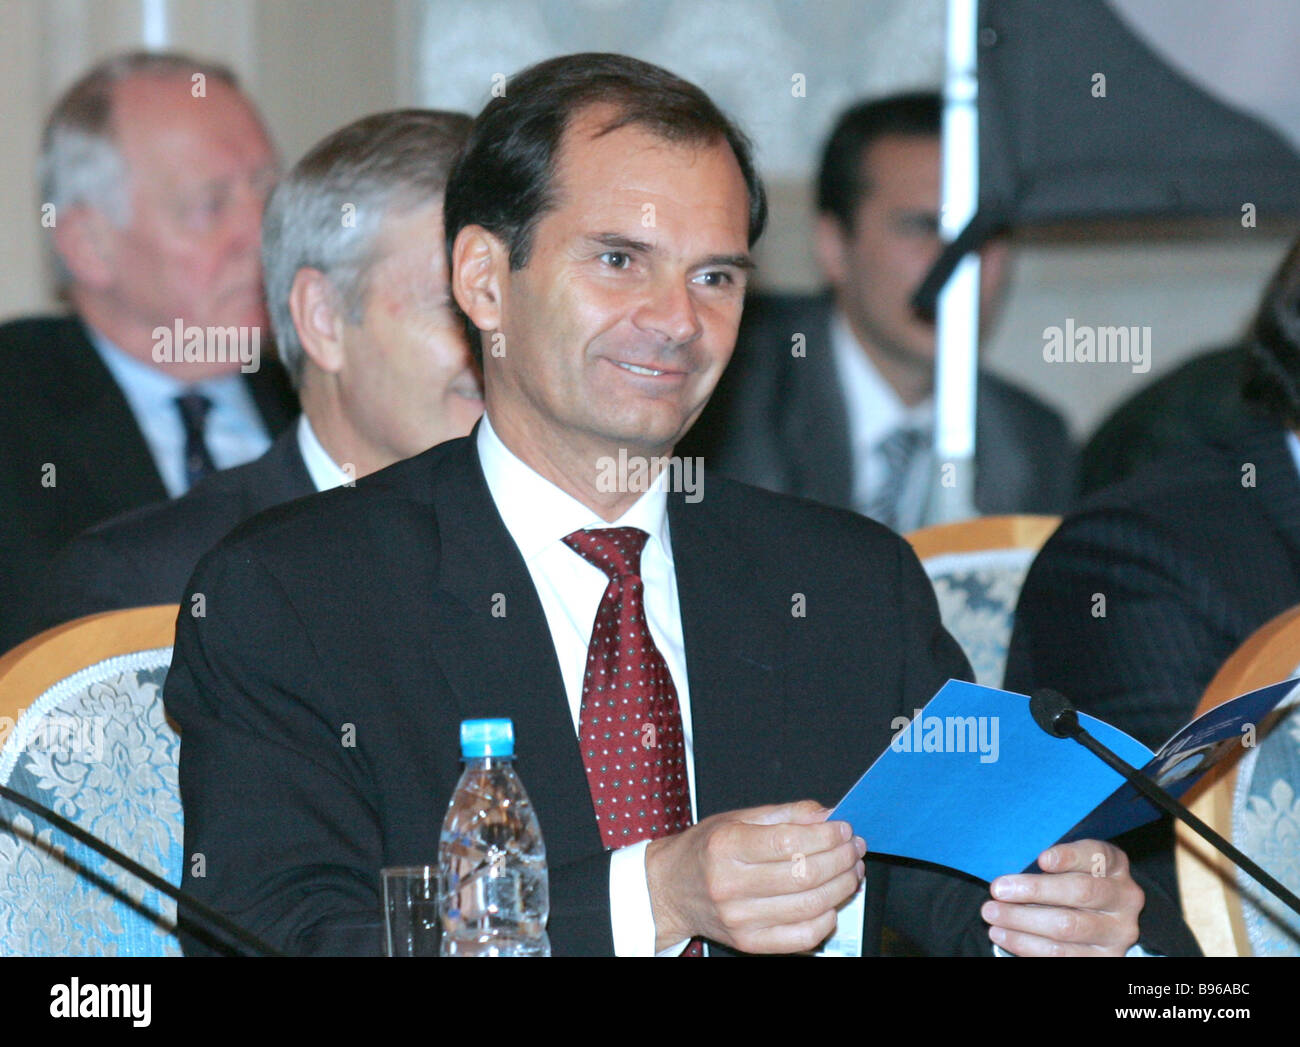 Dennis Jonsson president Tetra Pak at the 21st meeting of the Consultative Council for Foreign Investment in Russia - Stock Image